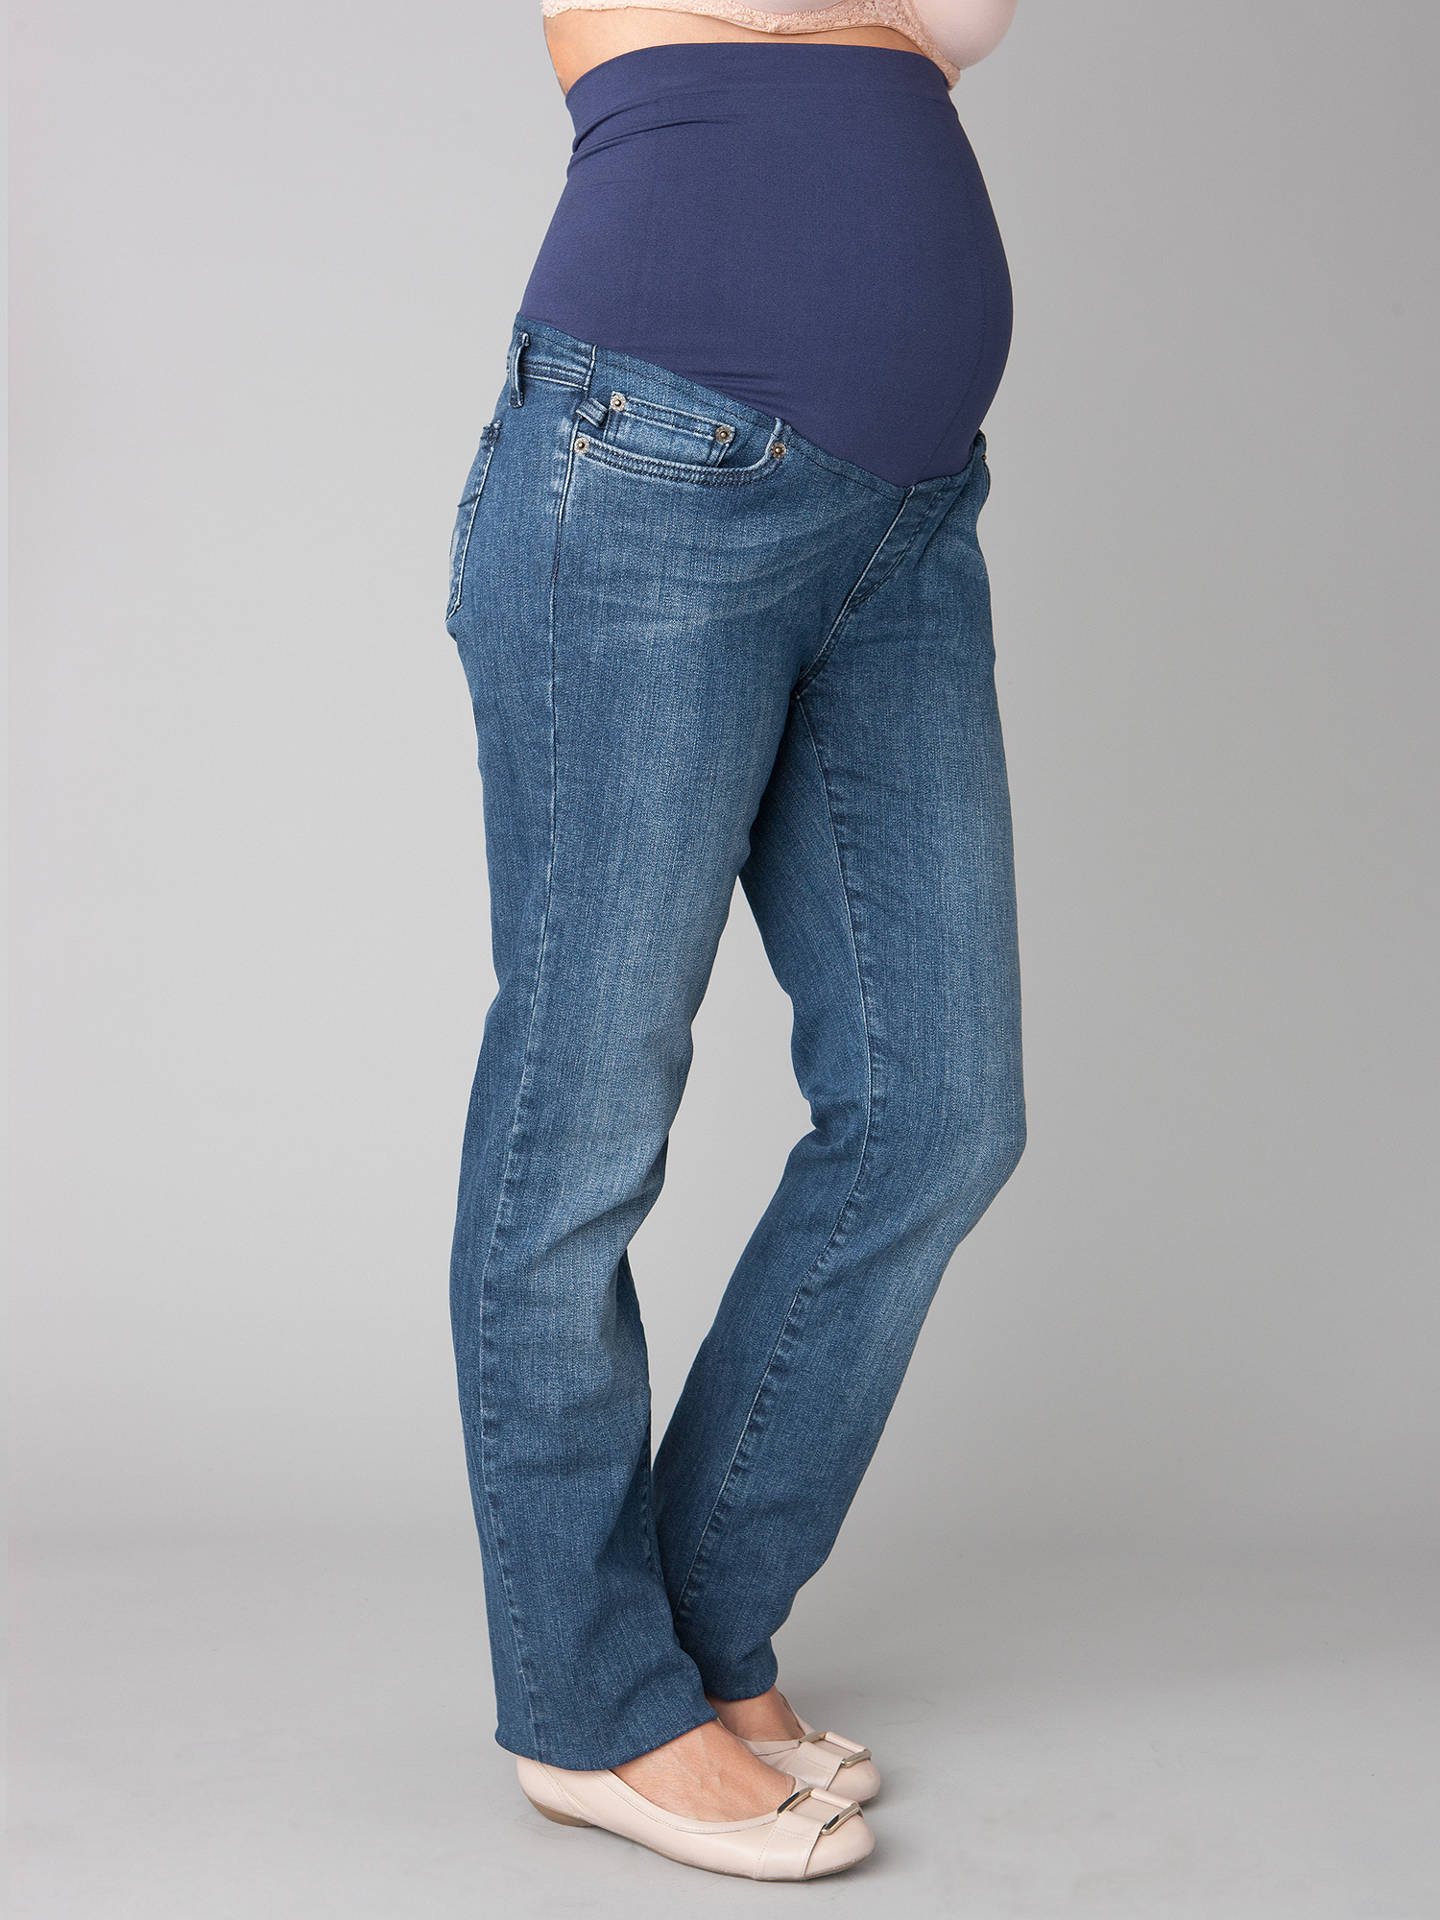 5d21ee9ce0049 Buy Séraphine Over Bump Maternity Jeans, Blue, 10 Online at johnlewis.com  ...